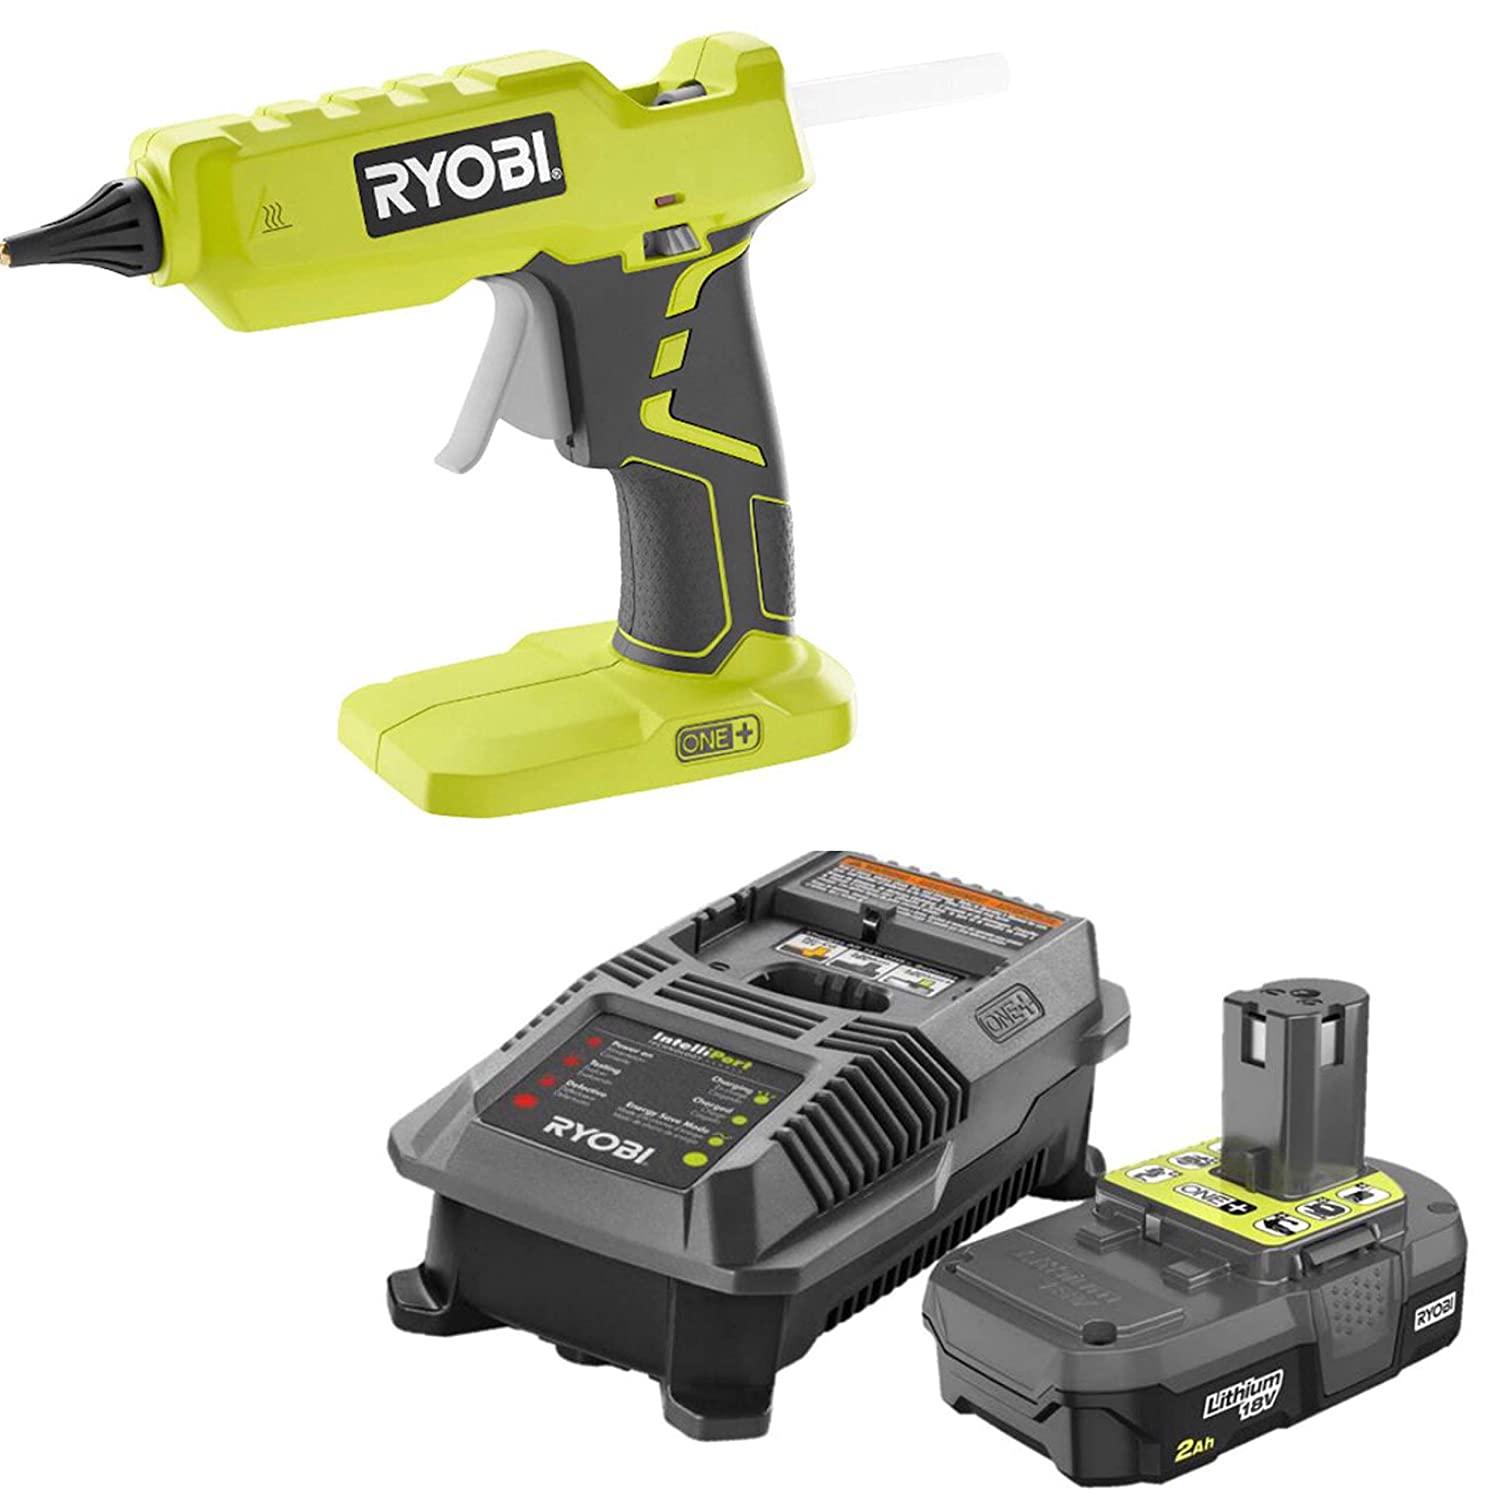 Ryobi Glue Gun P305 with Charger & Lithium-ion battery P163 18-Volt ONE+ 2.0 Ah battery and charger